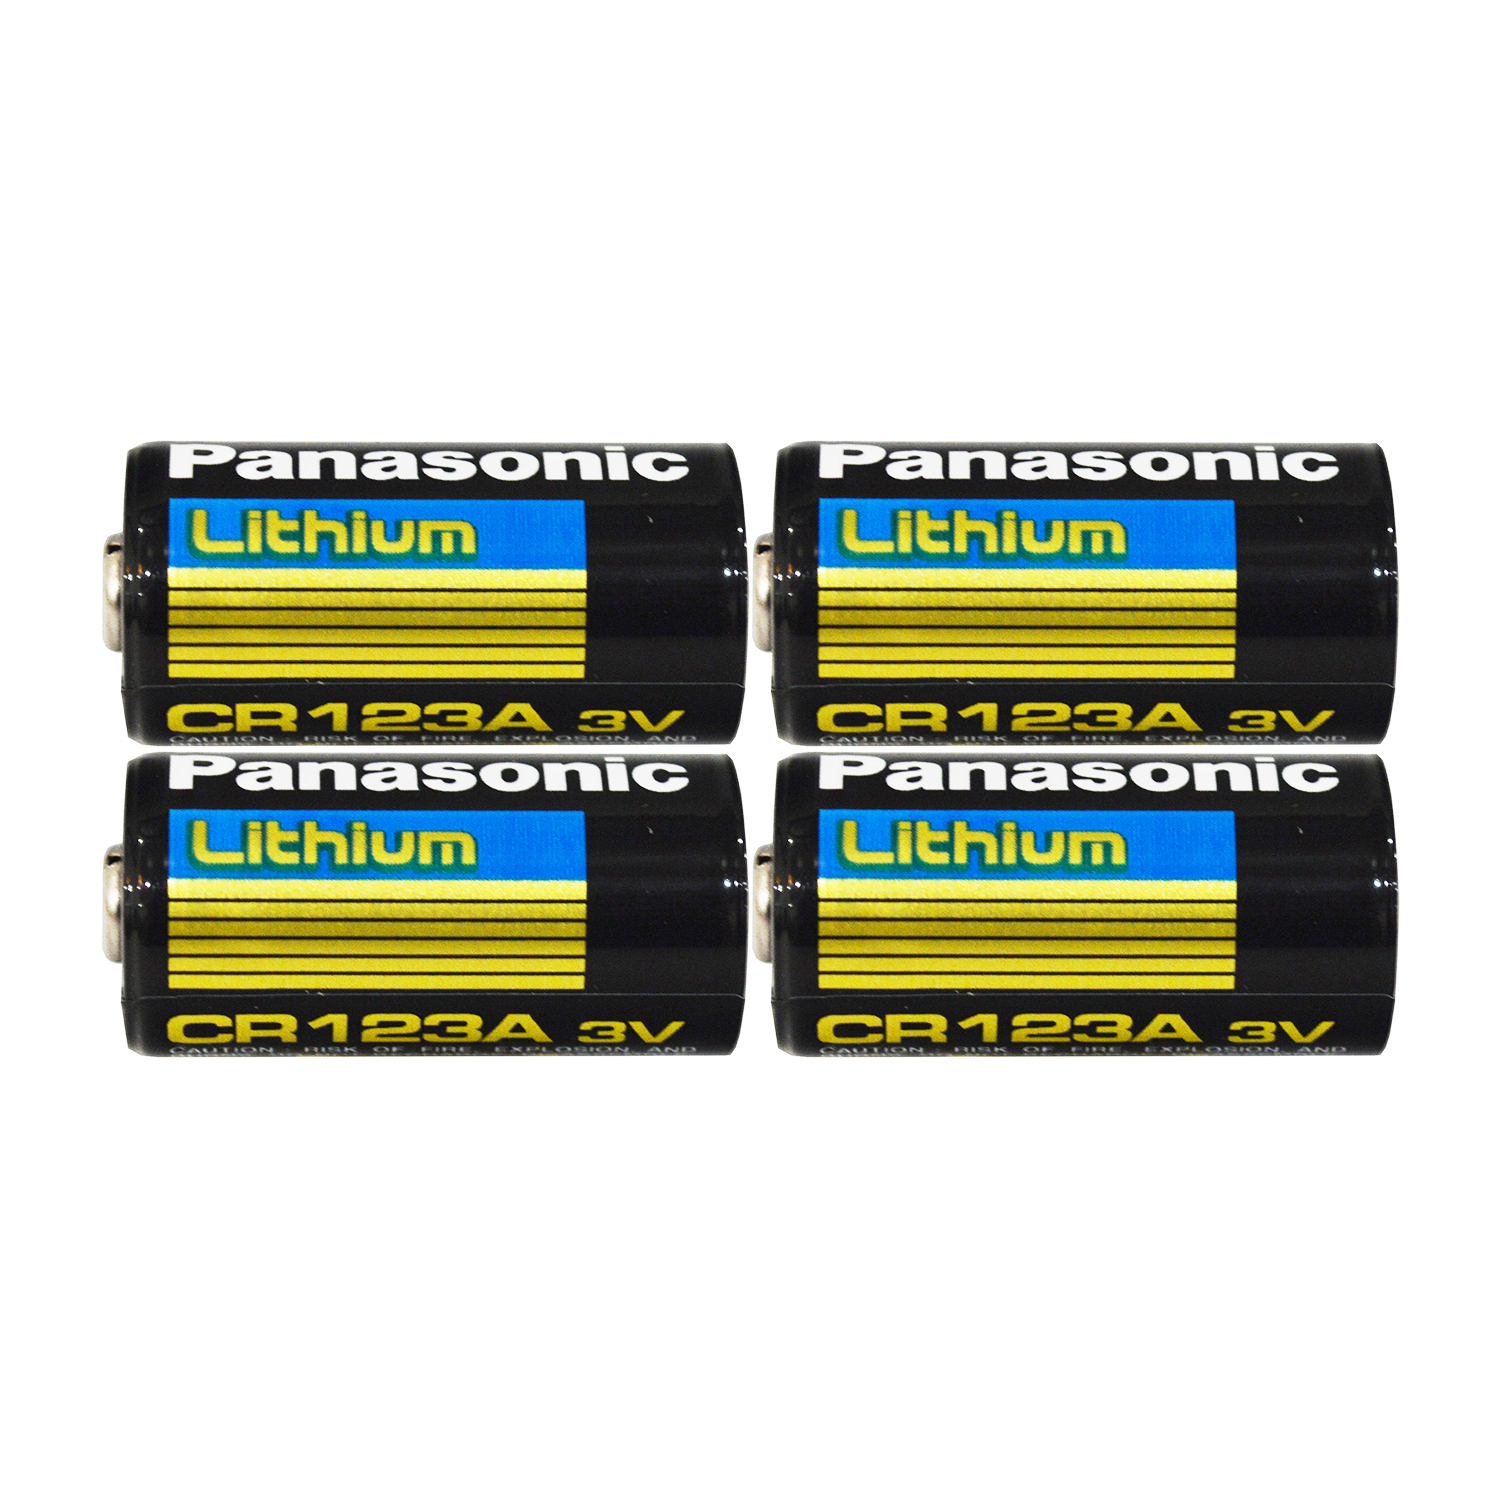 4 Pack - Panasonic CR123A 3V Long Lasting Lithium Batteries